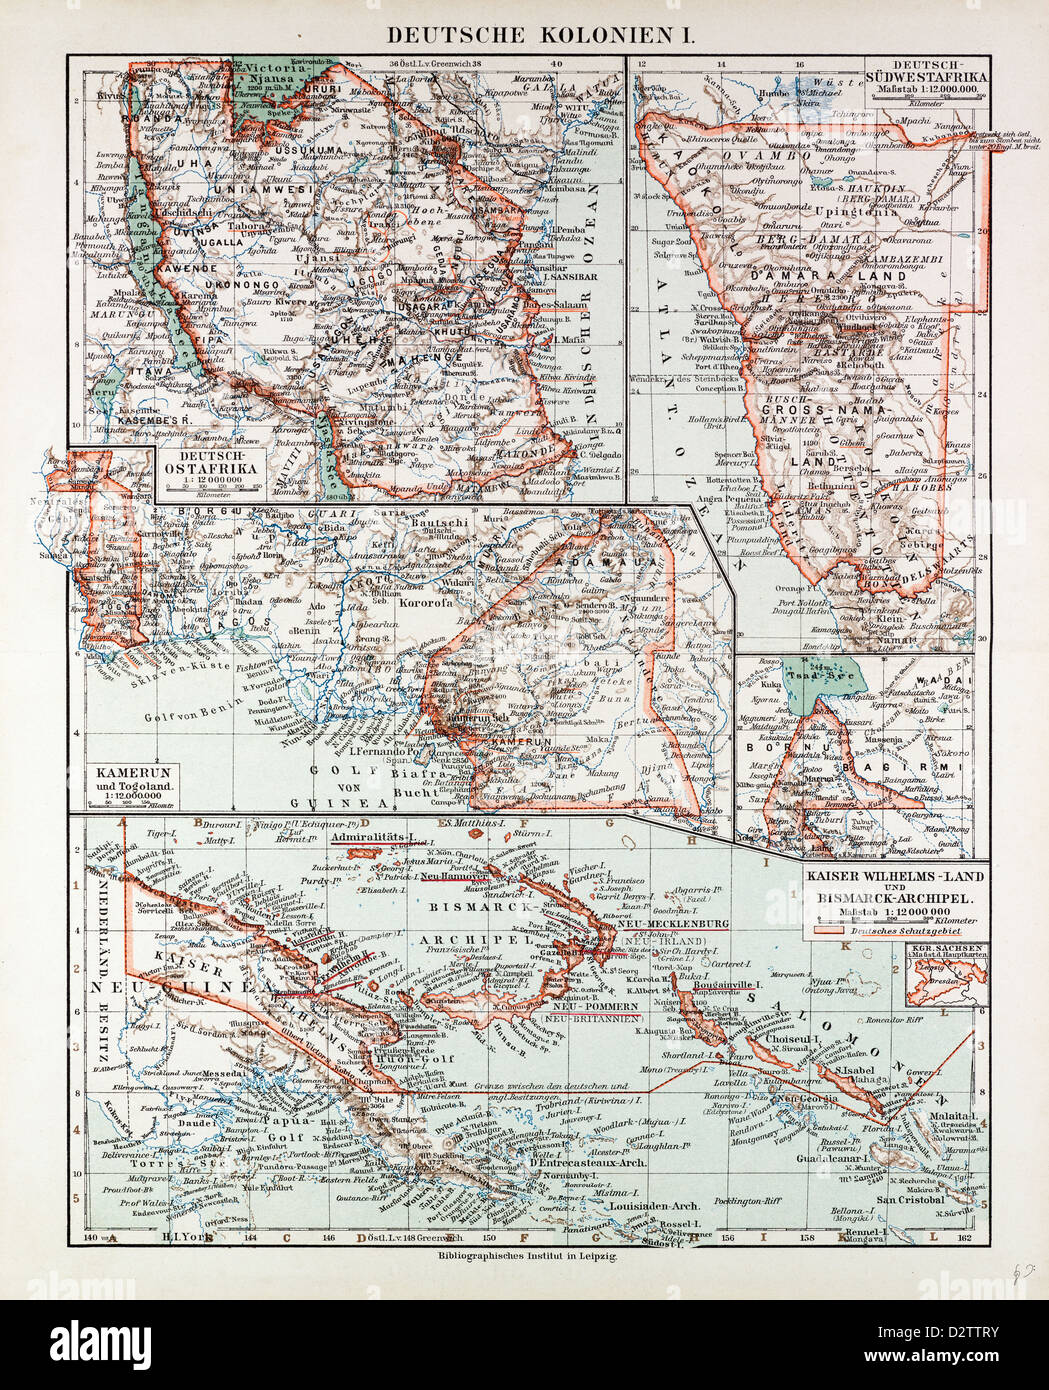 map of german colonies german new guinea cameroon 1899 stock image